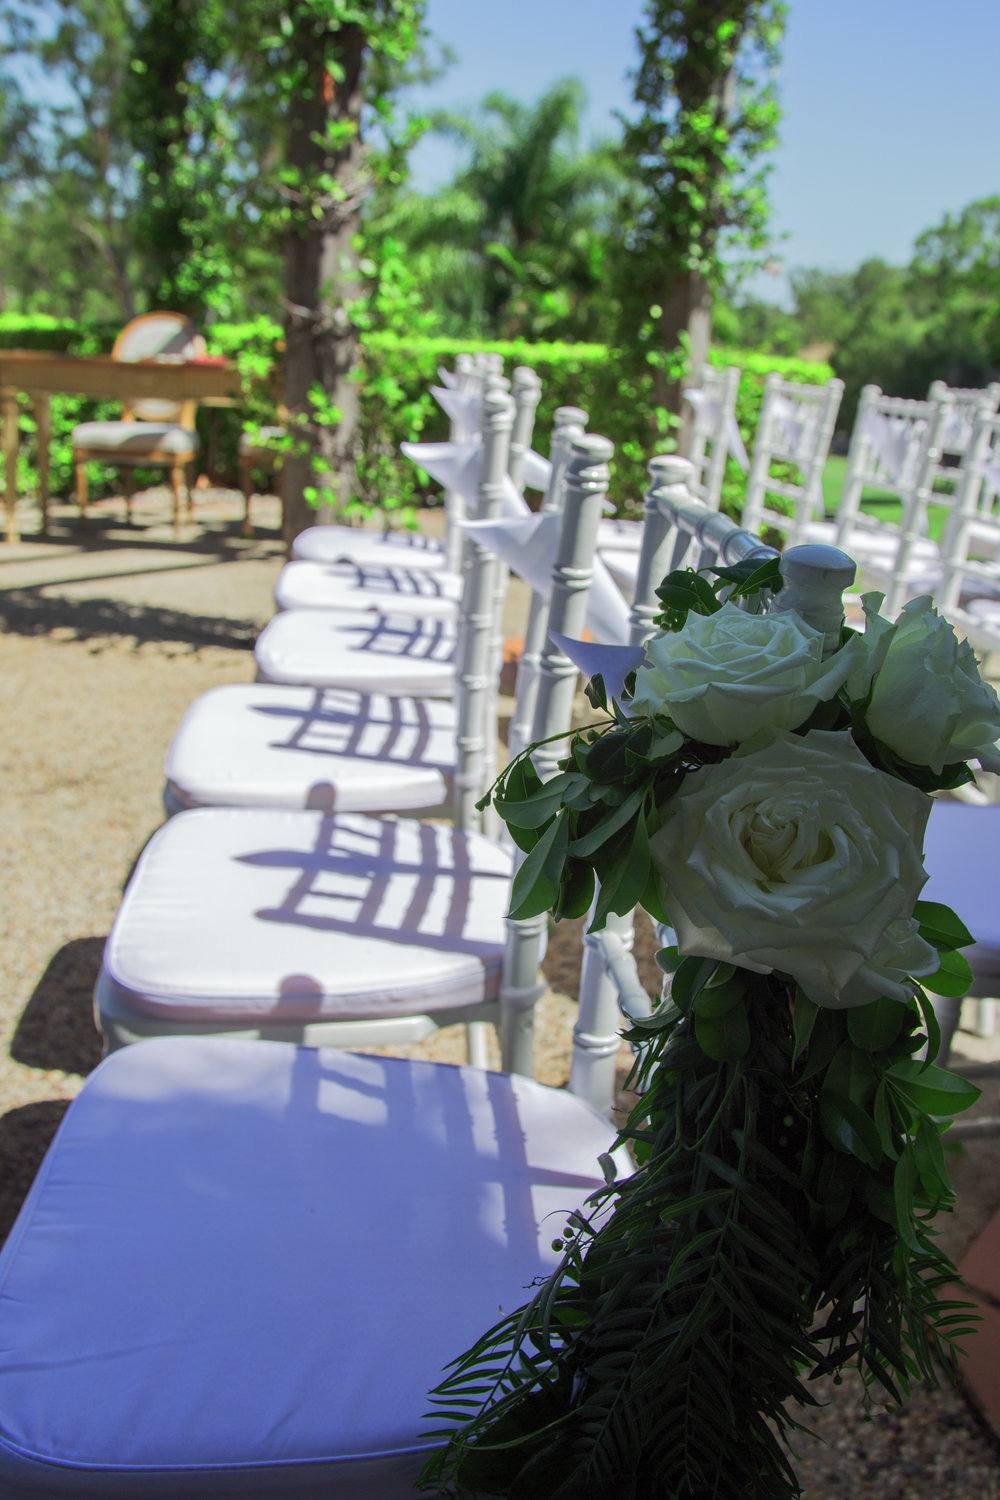 White-tiffany-chairs-wedding-flower-roses-chair-garlands-brisbane-HT-Events.jpg